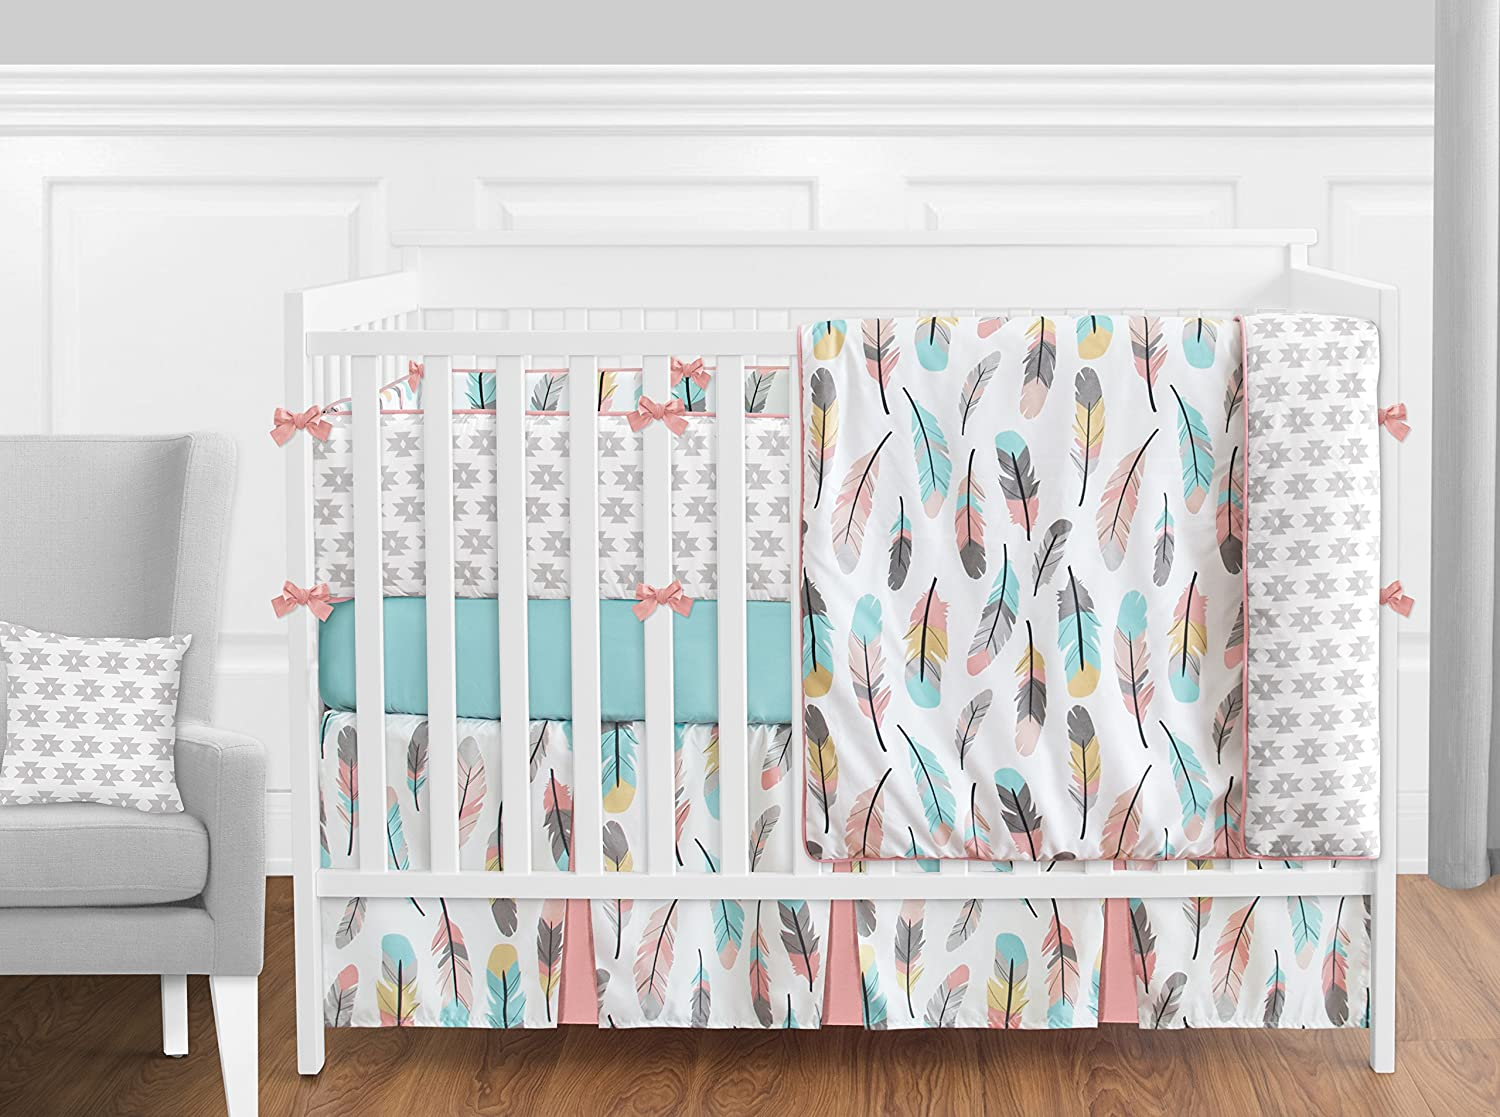 Sweet Jojo Designs 2-Piece Feather Collection Teething Protector Cover Wrap Baby Crib Side Rail Guards